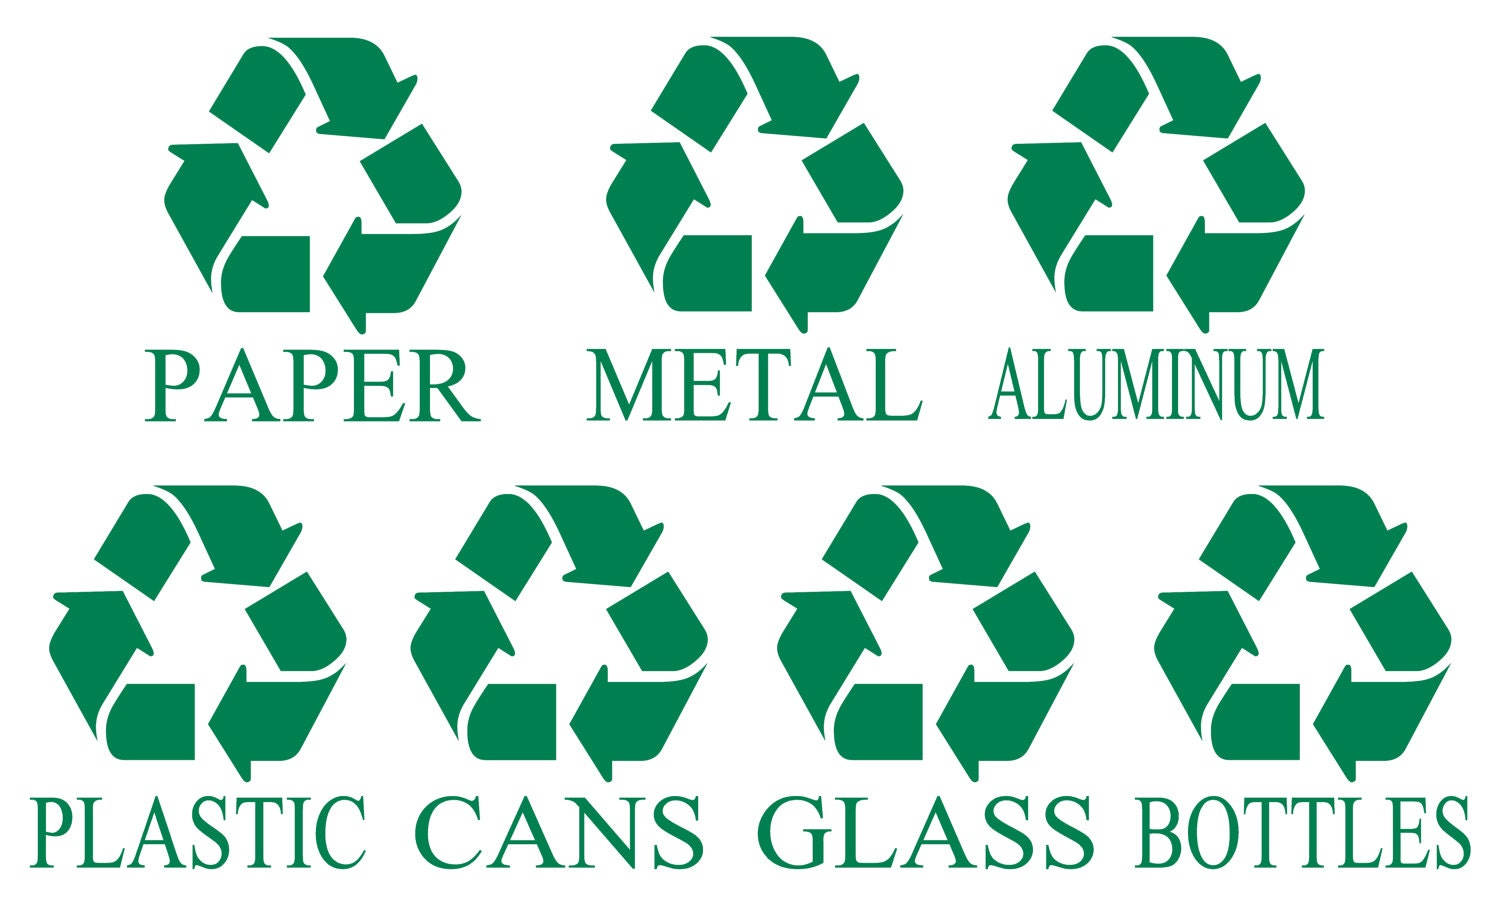 Recycle symbol recycle sign decal recycle sticker trash description recycle symbol buycottarizona